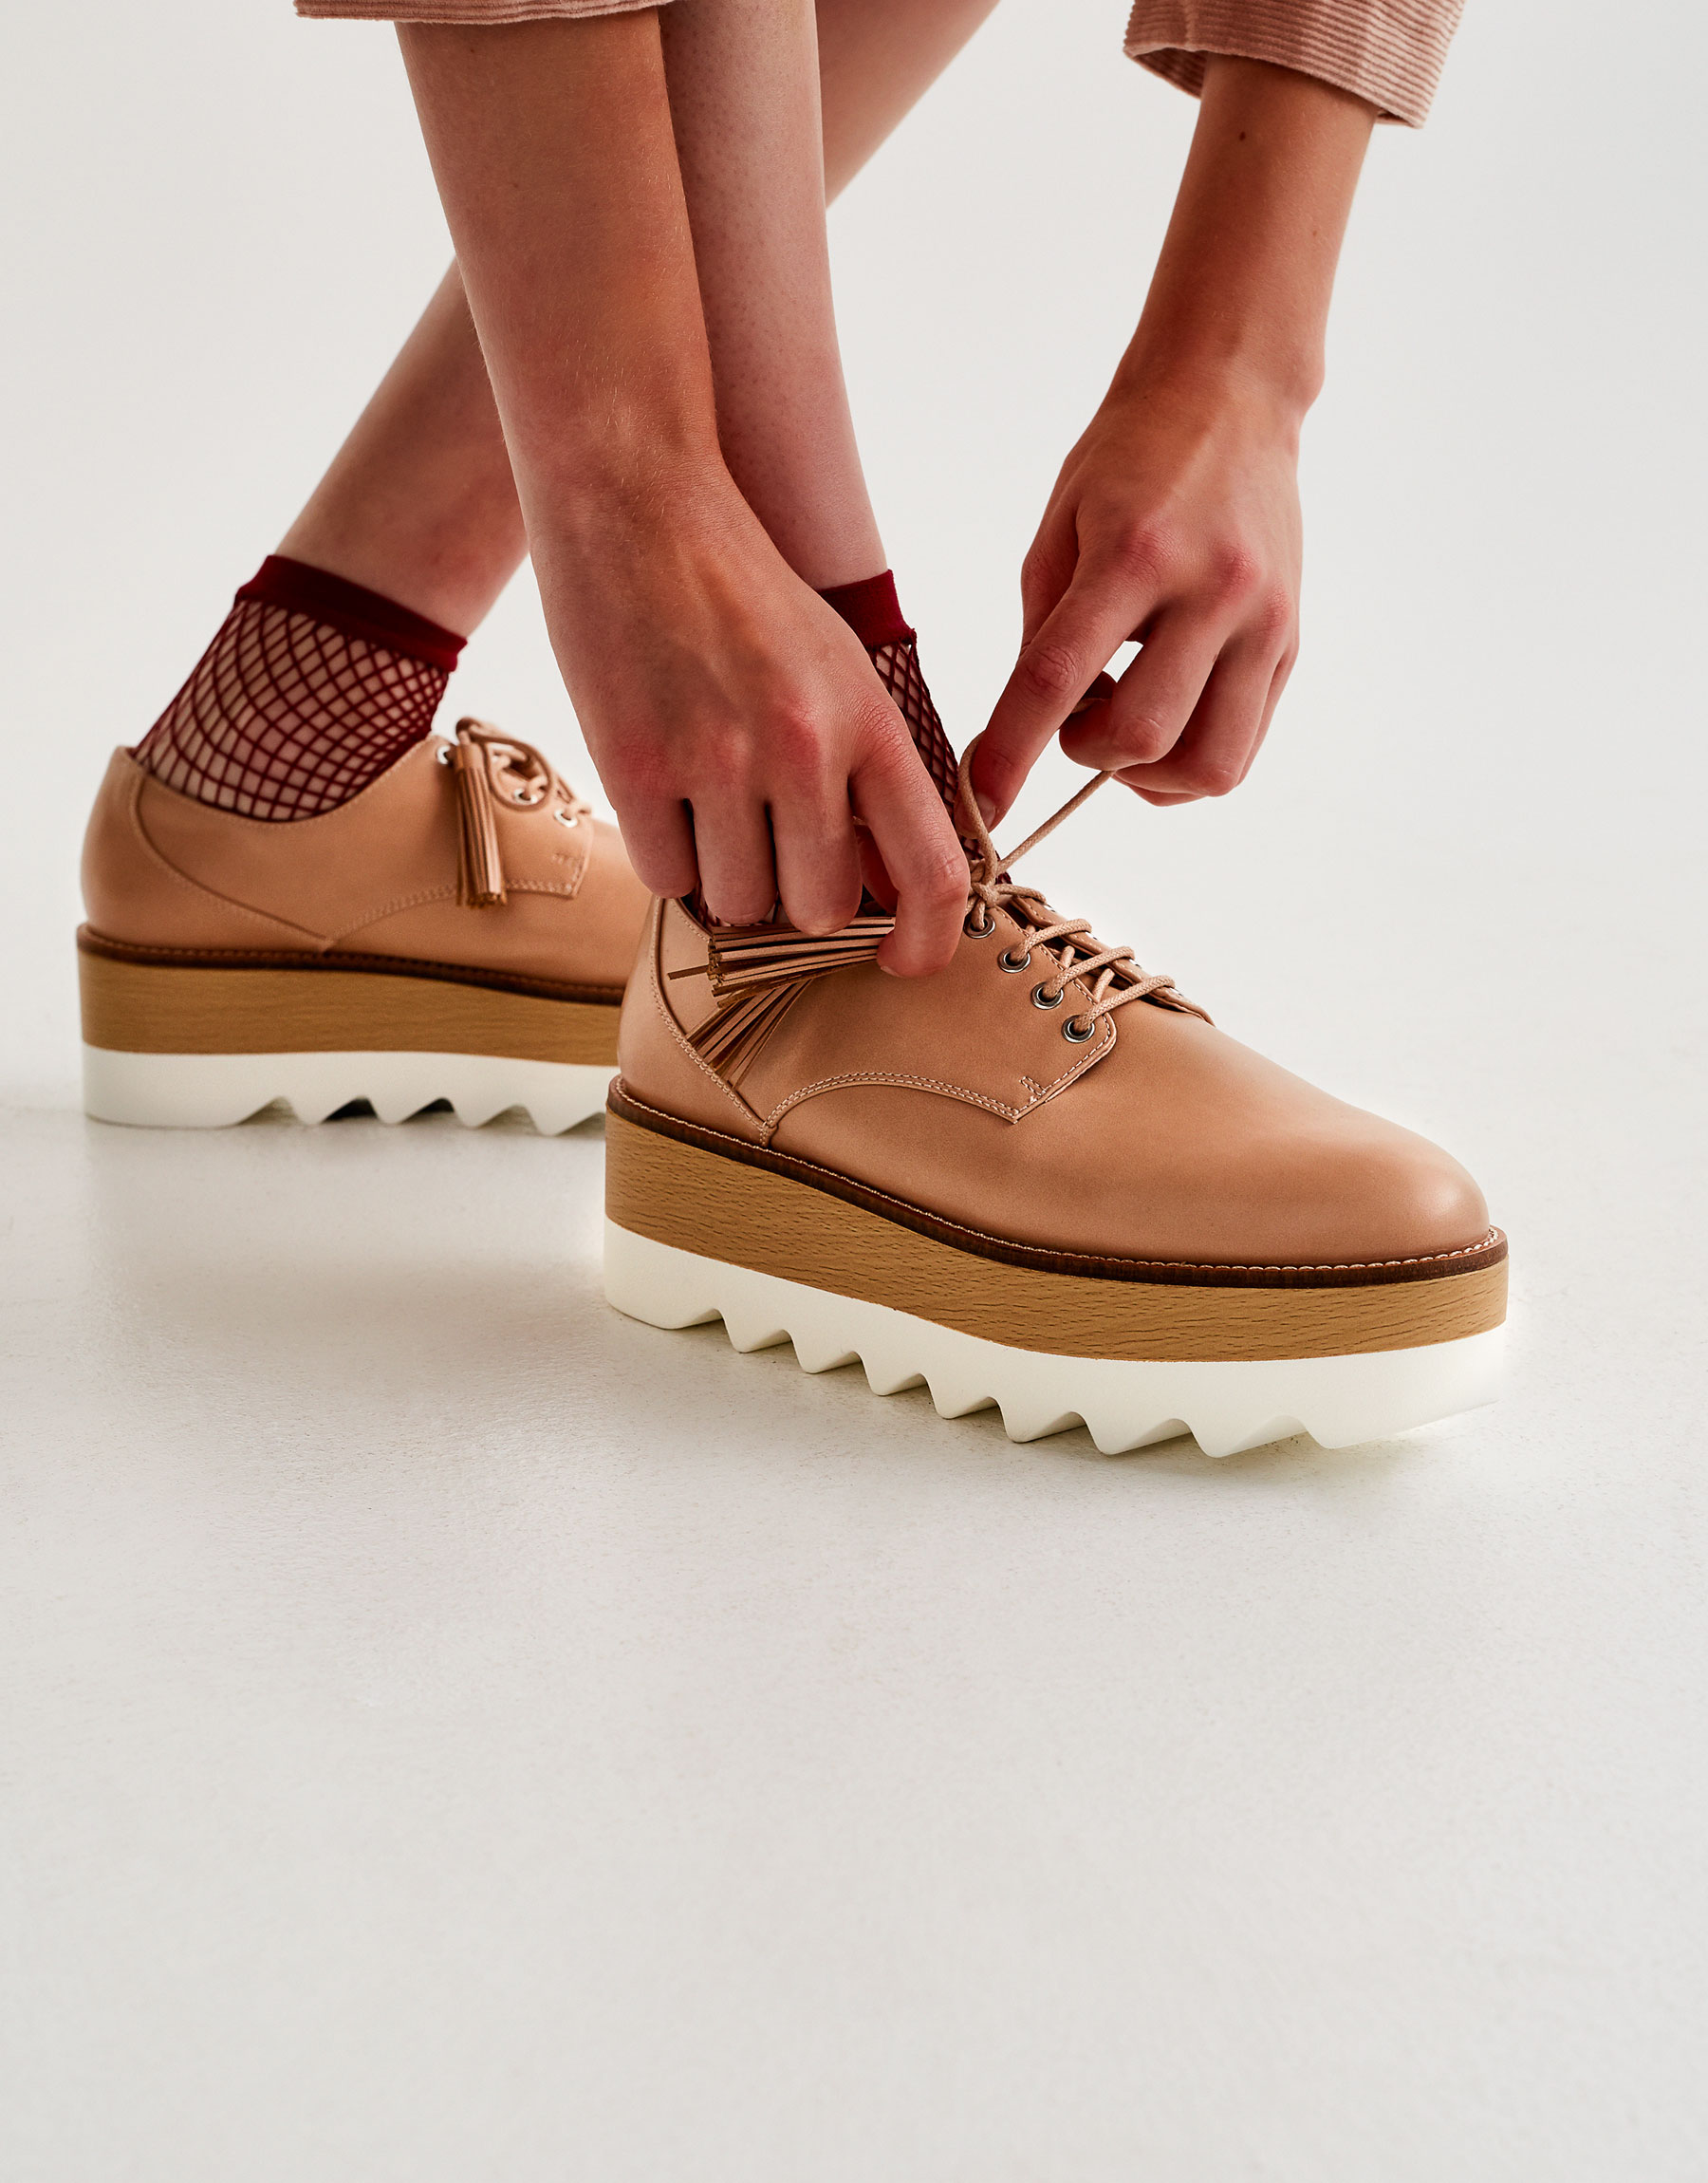 Lace-up platform brogues